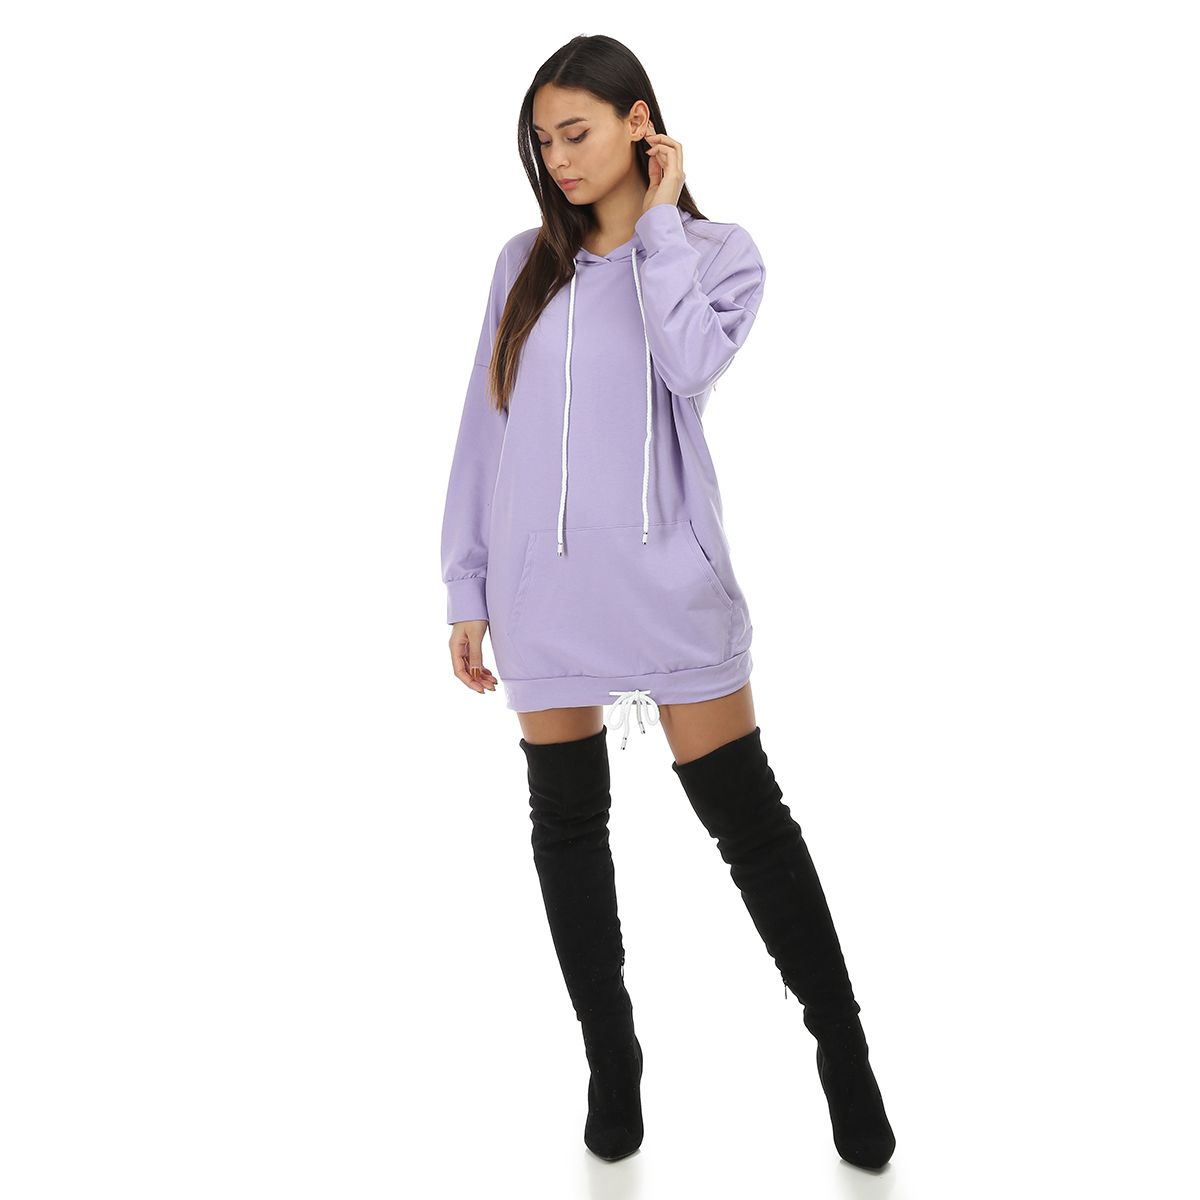 Robe sweat parme à capuche